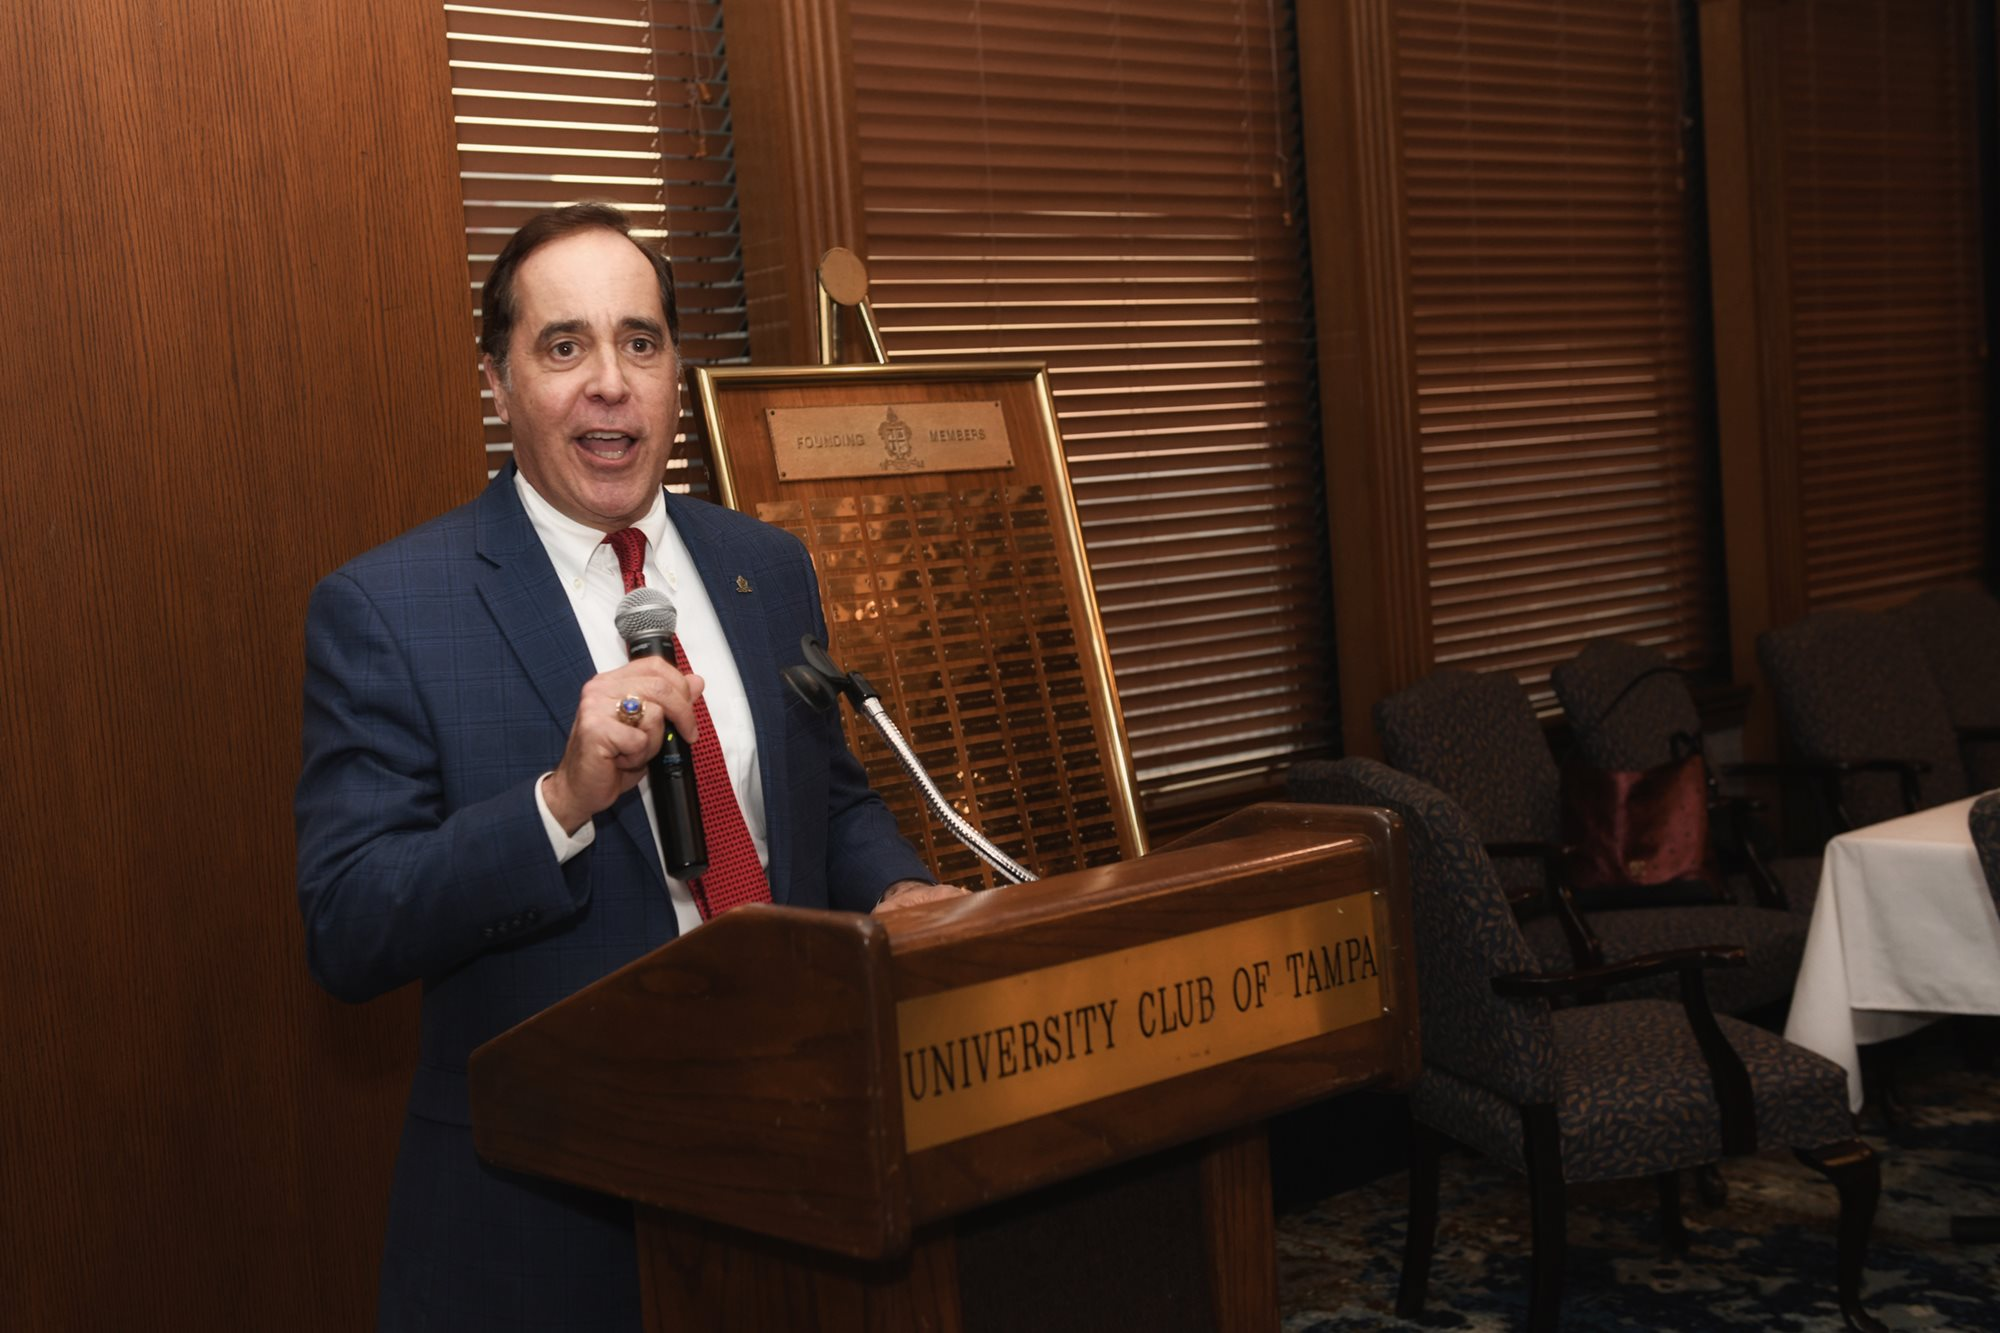 Hillsborough_Room